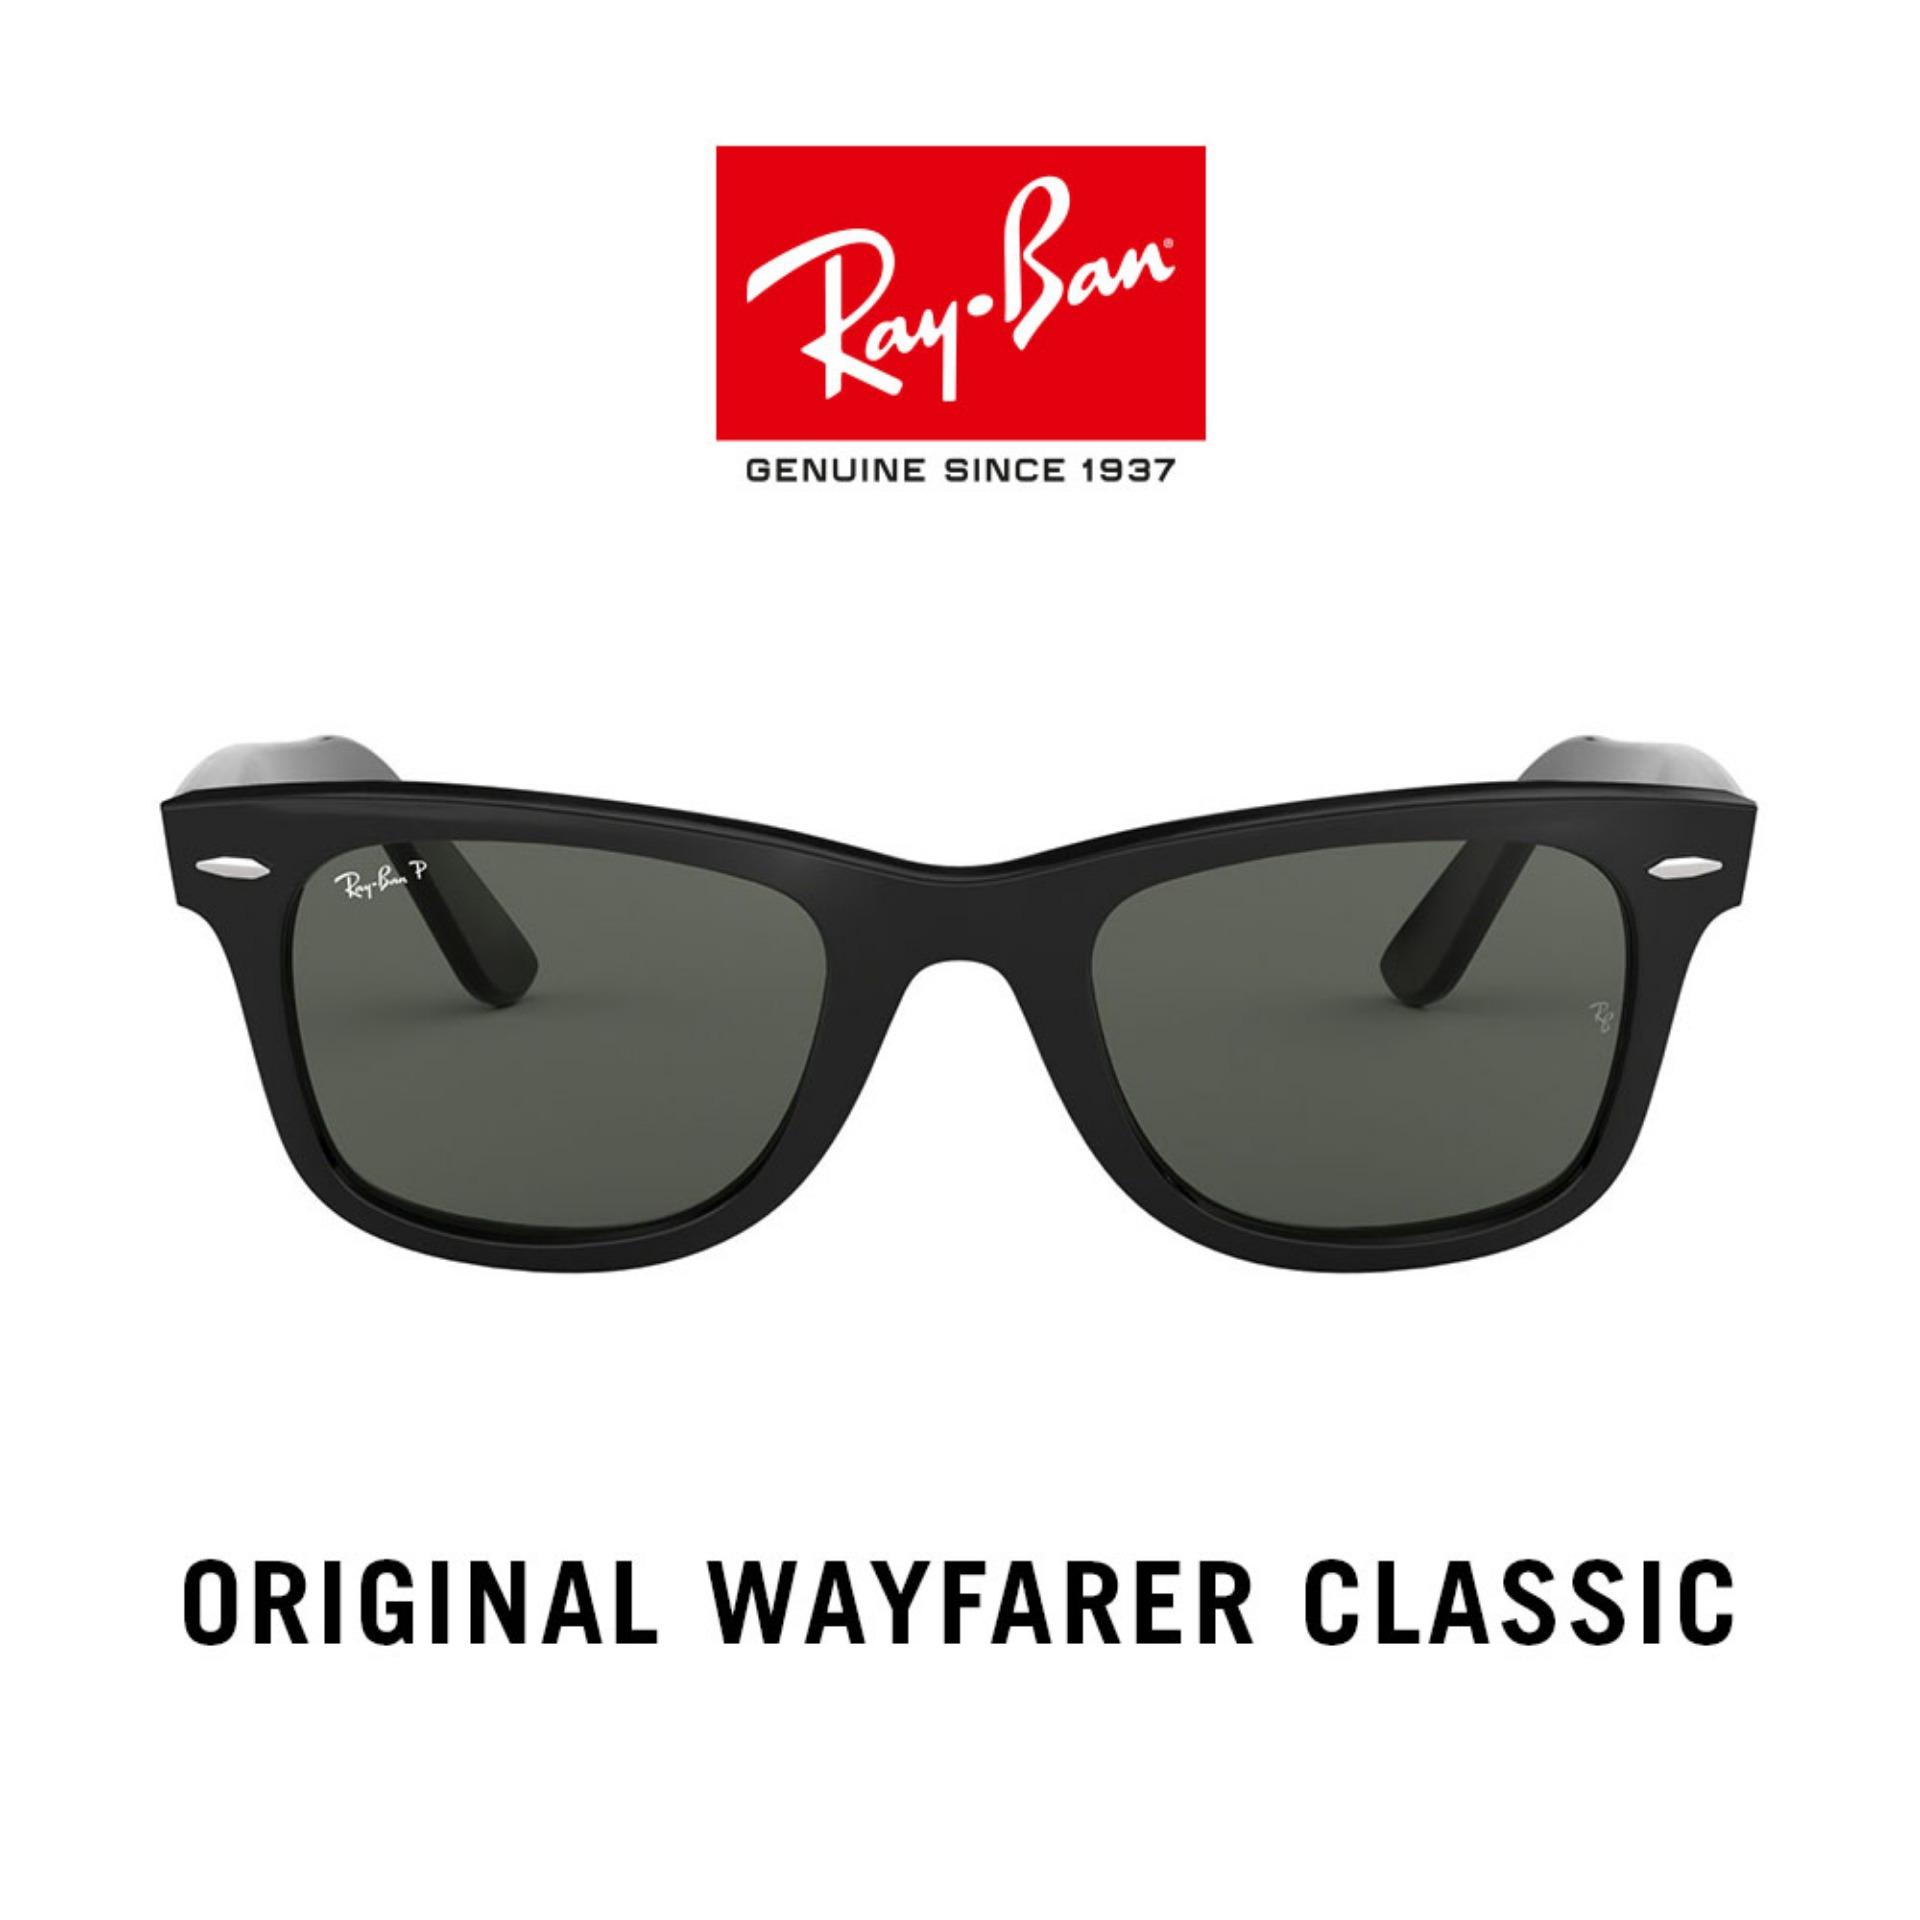 e2bdc59b80 Ray Ban Philippines  Ray Ban price list - Shades   Sunglasses for ...